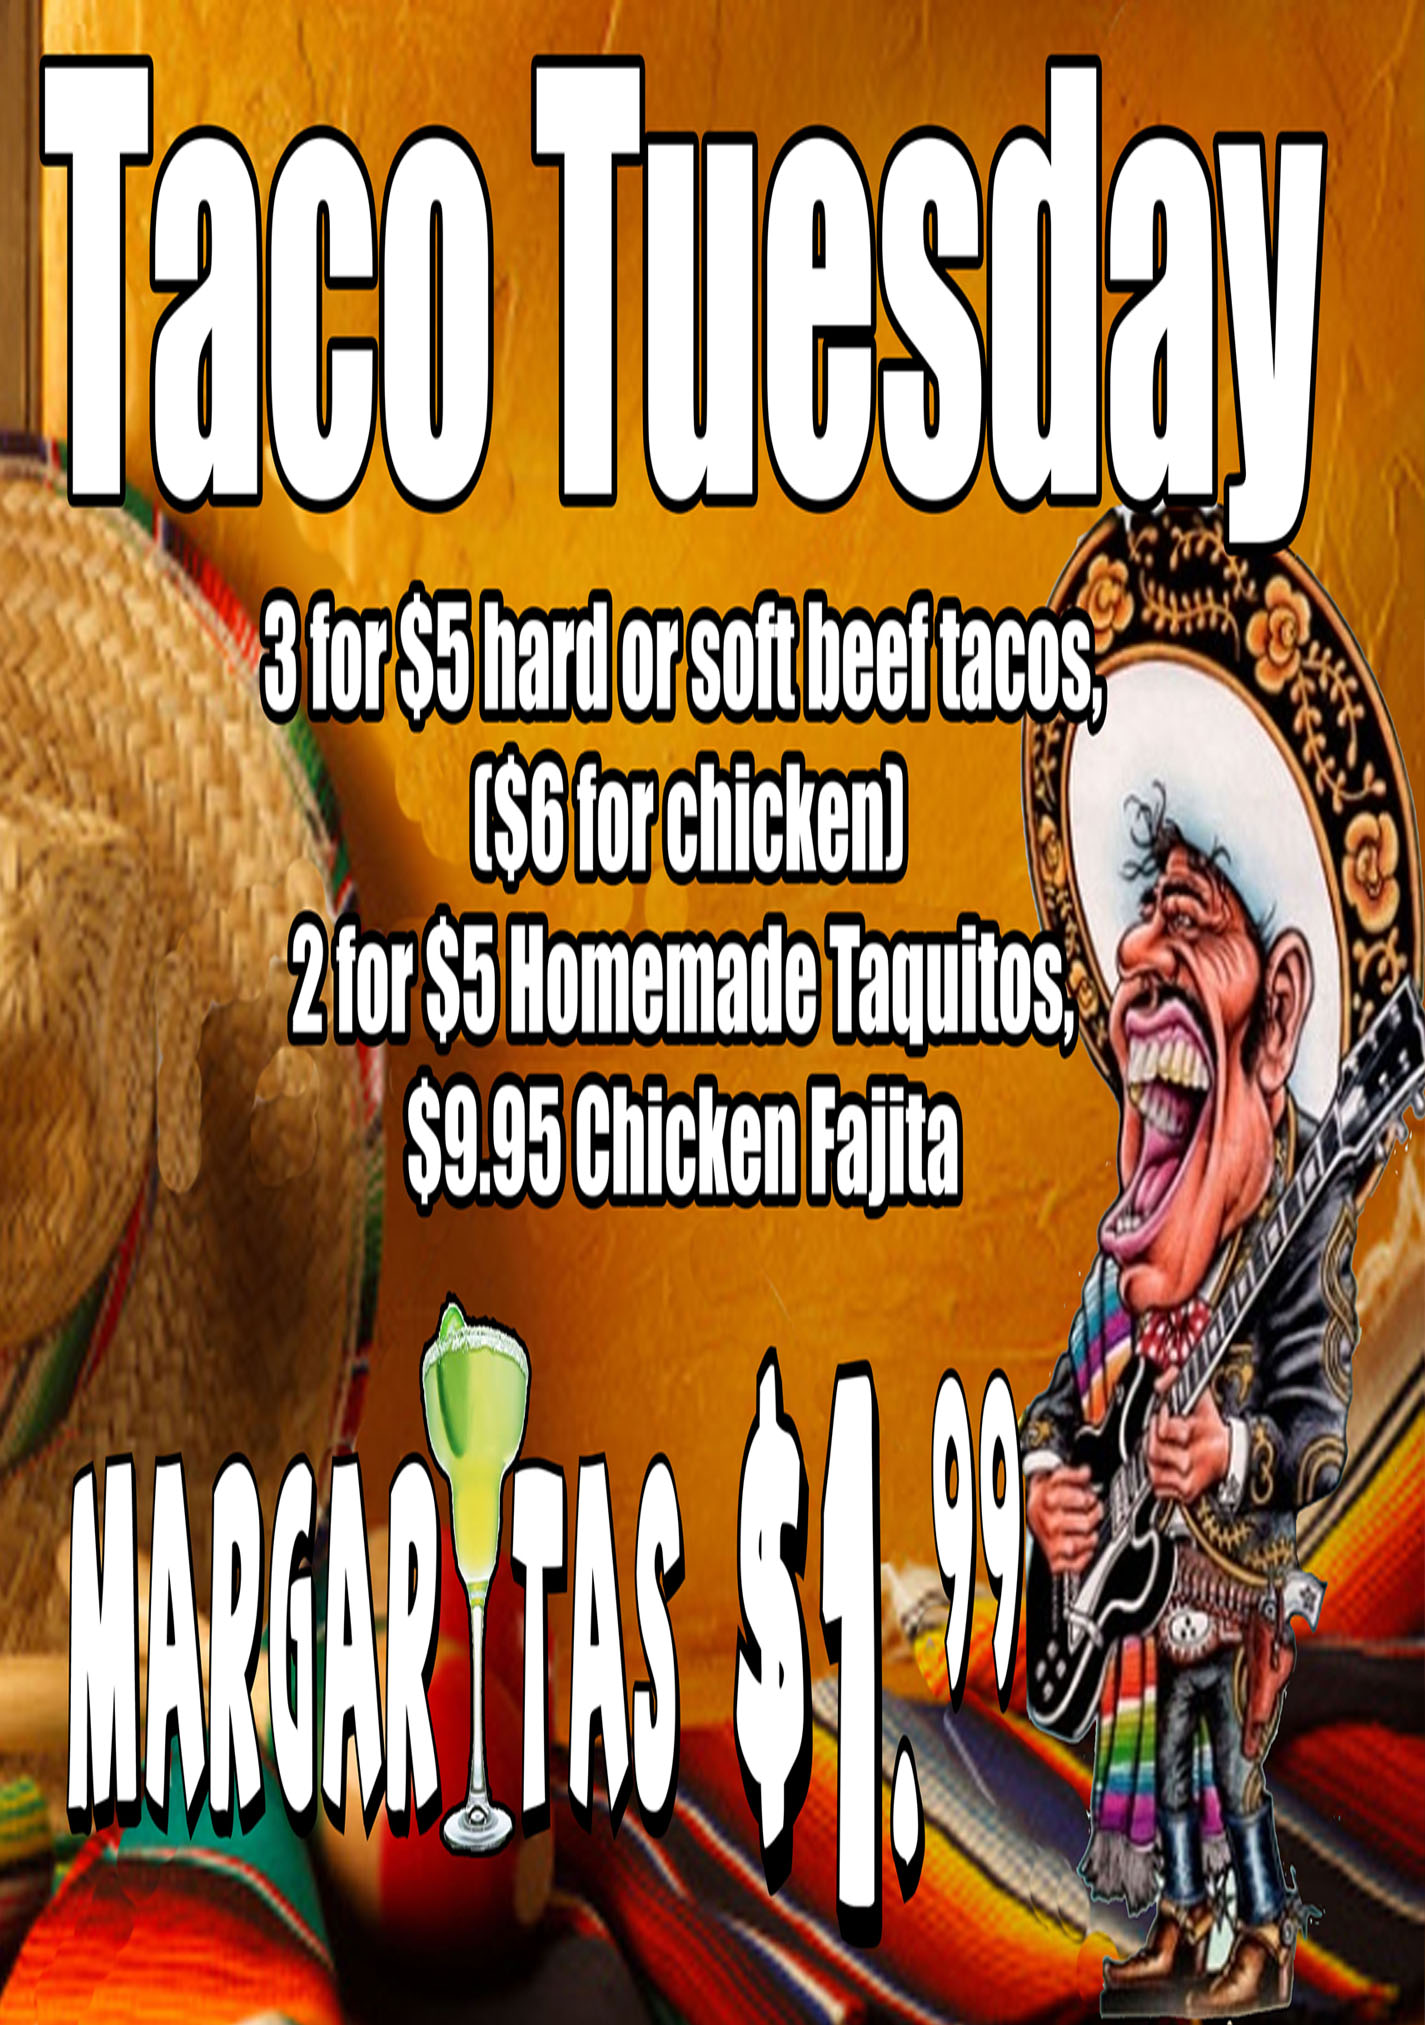 Tuesday Special